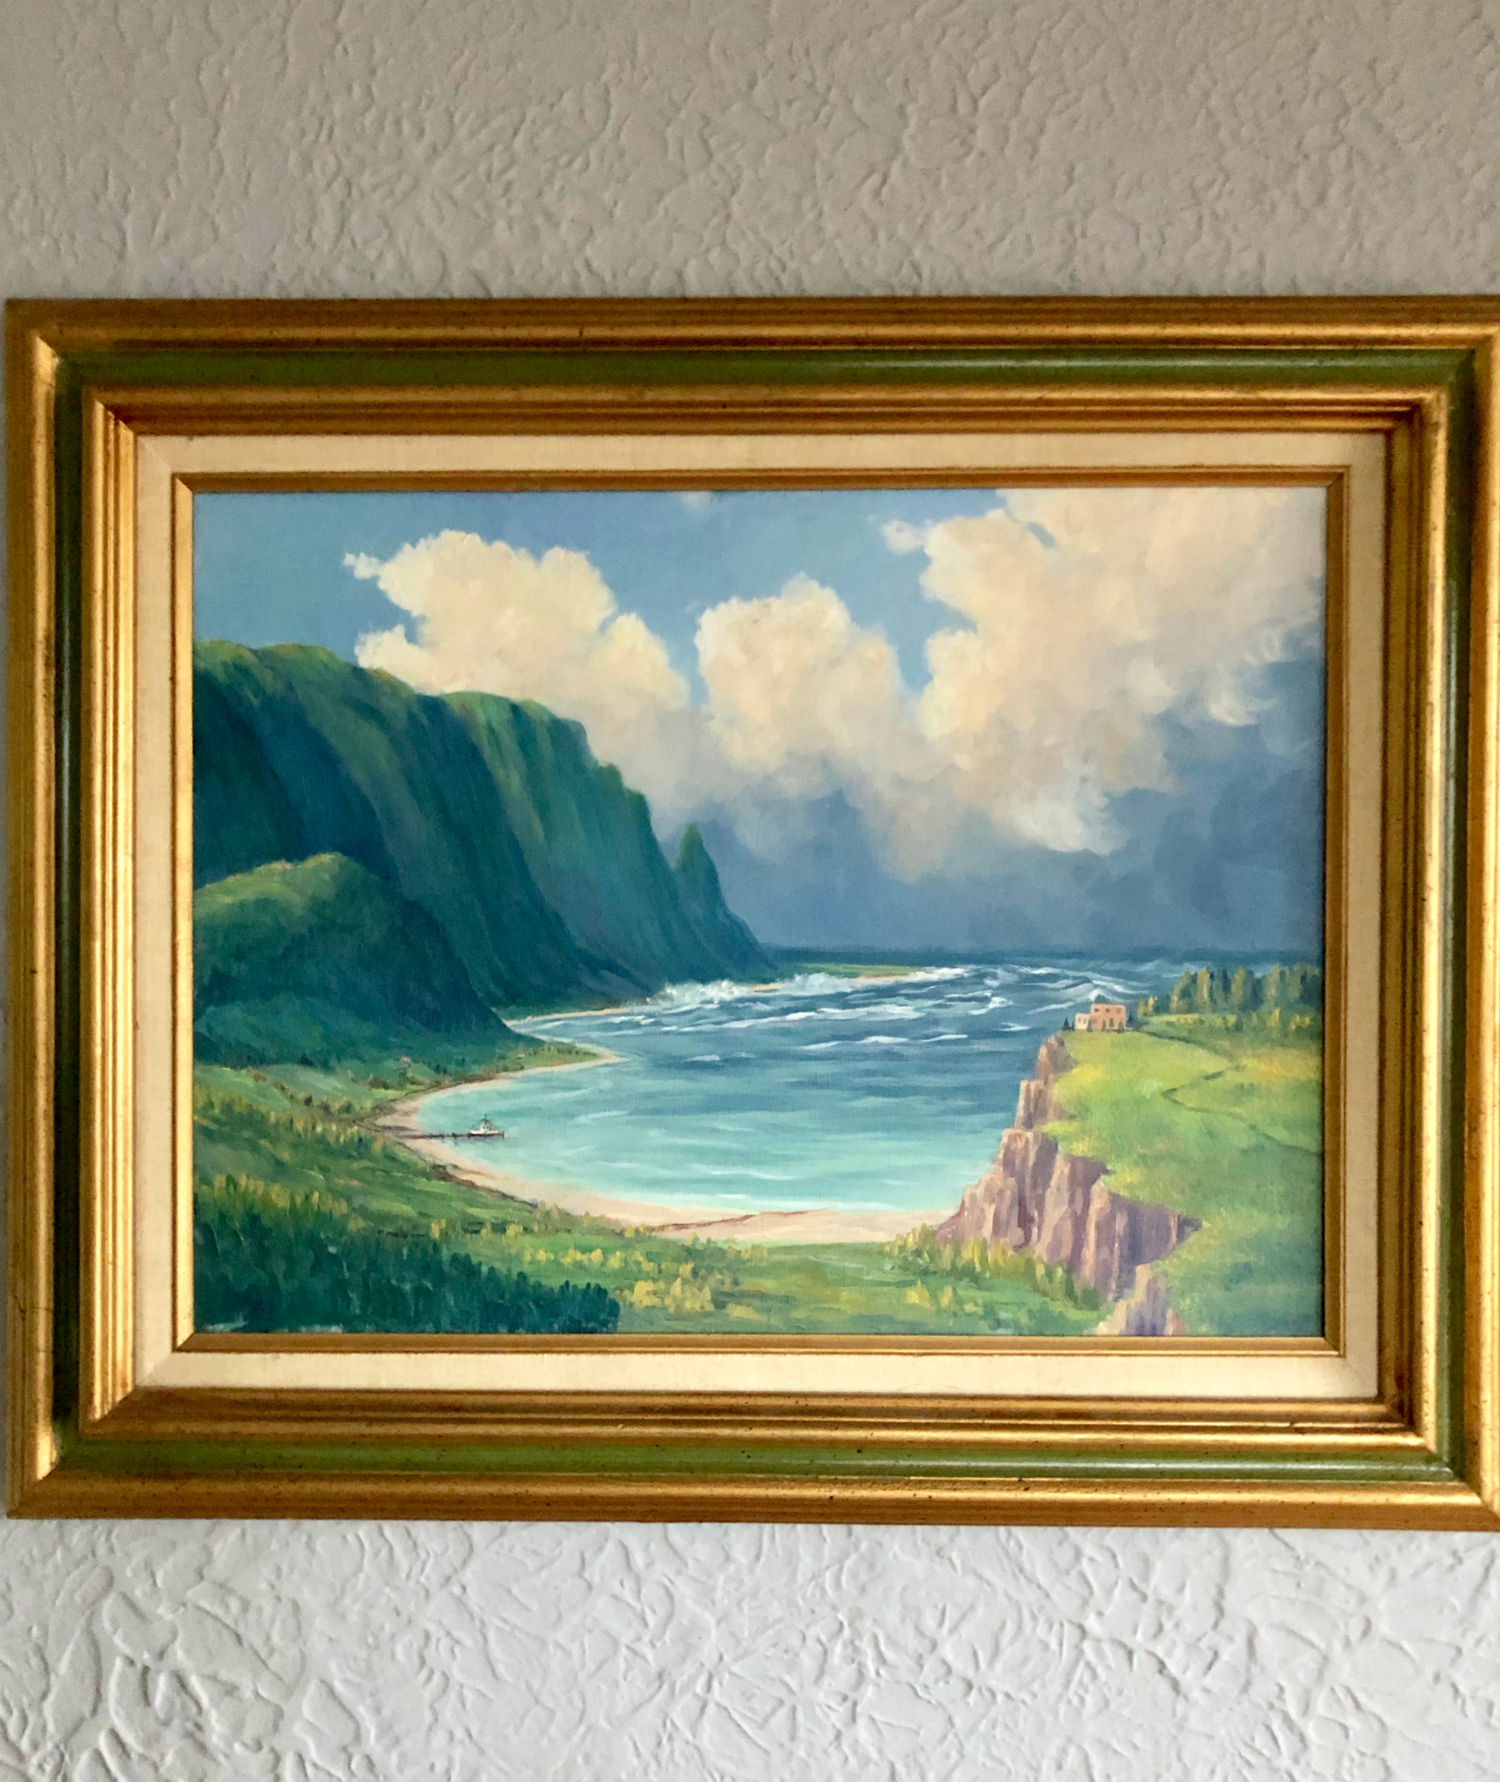 Hawaii Landscape Oil Painting on Canvas